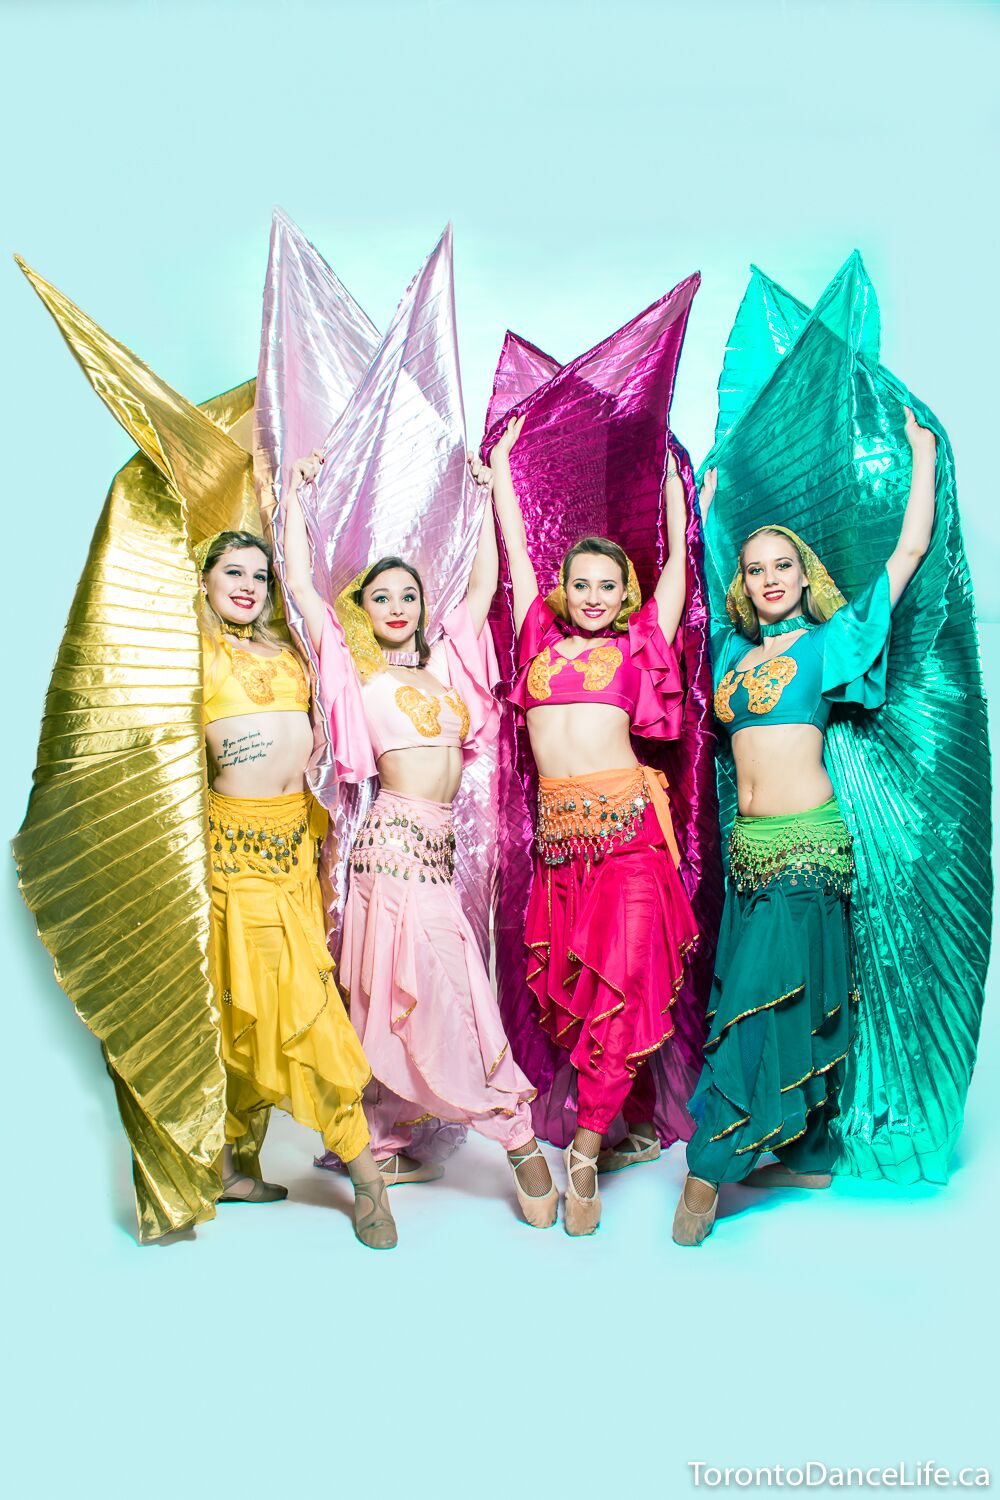 Eastern and Belly dance performance with wings